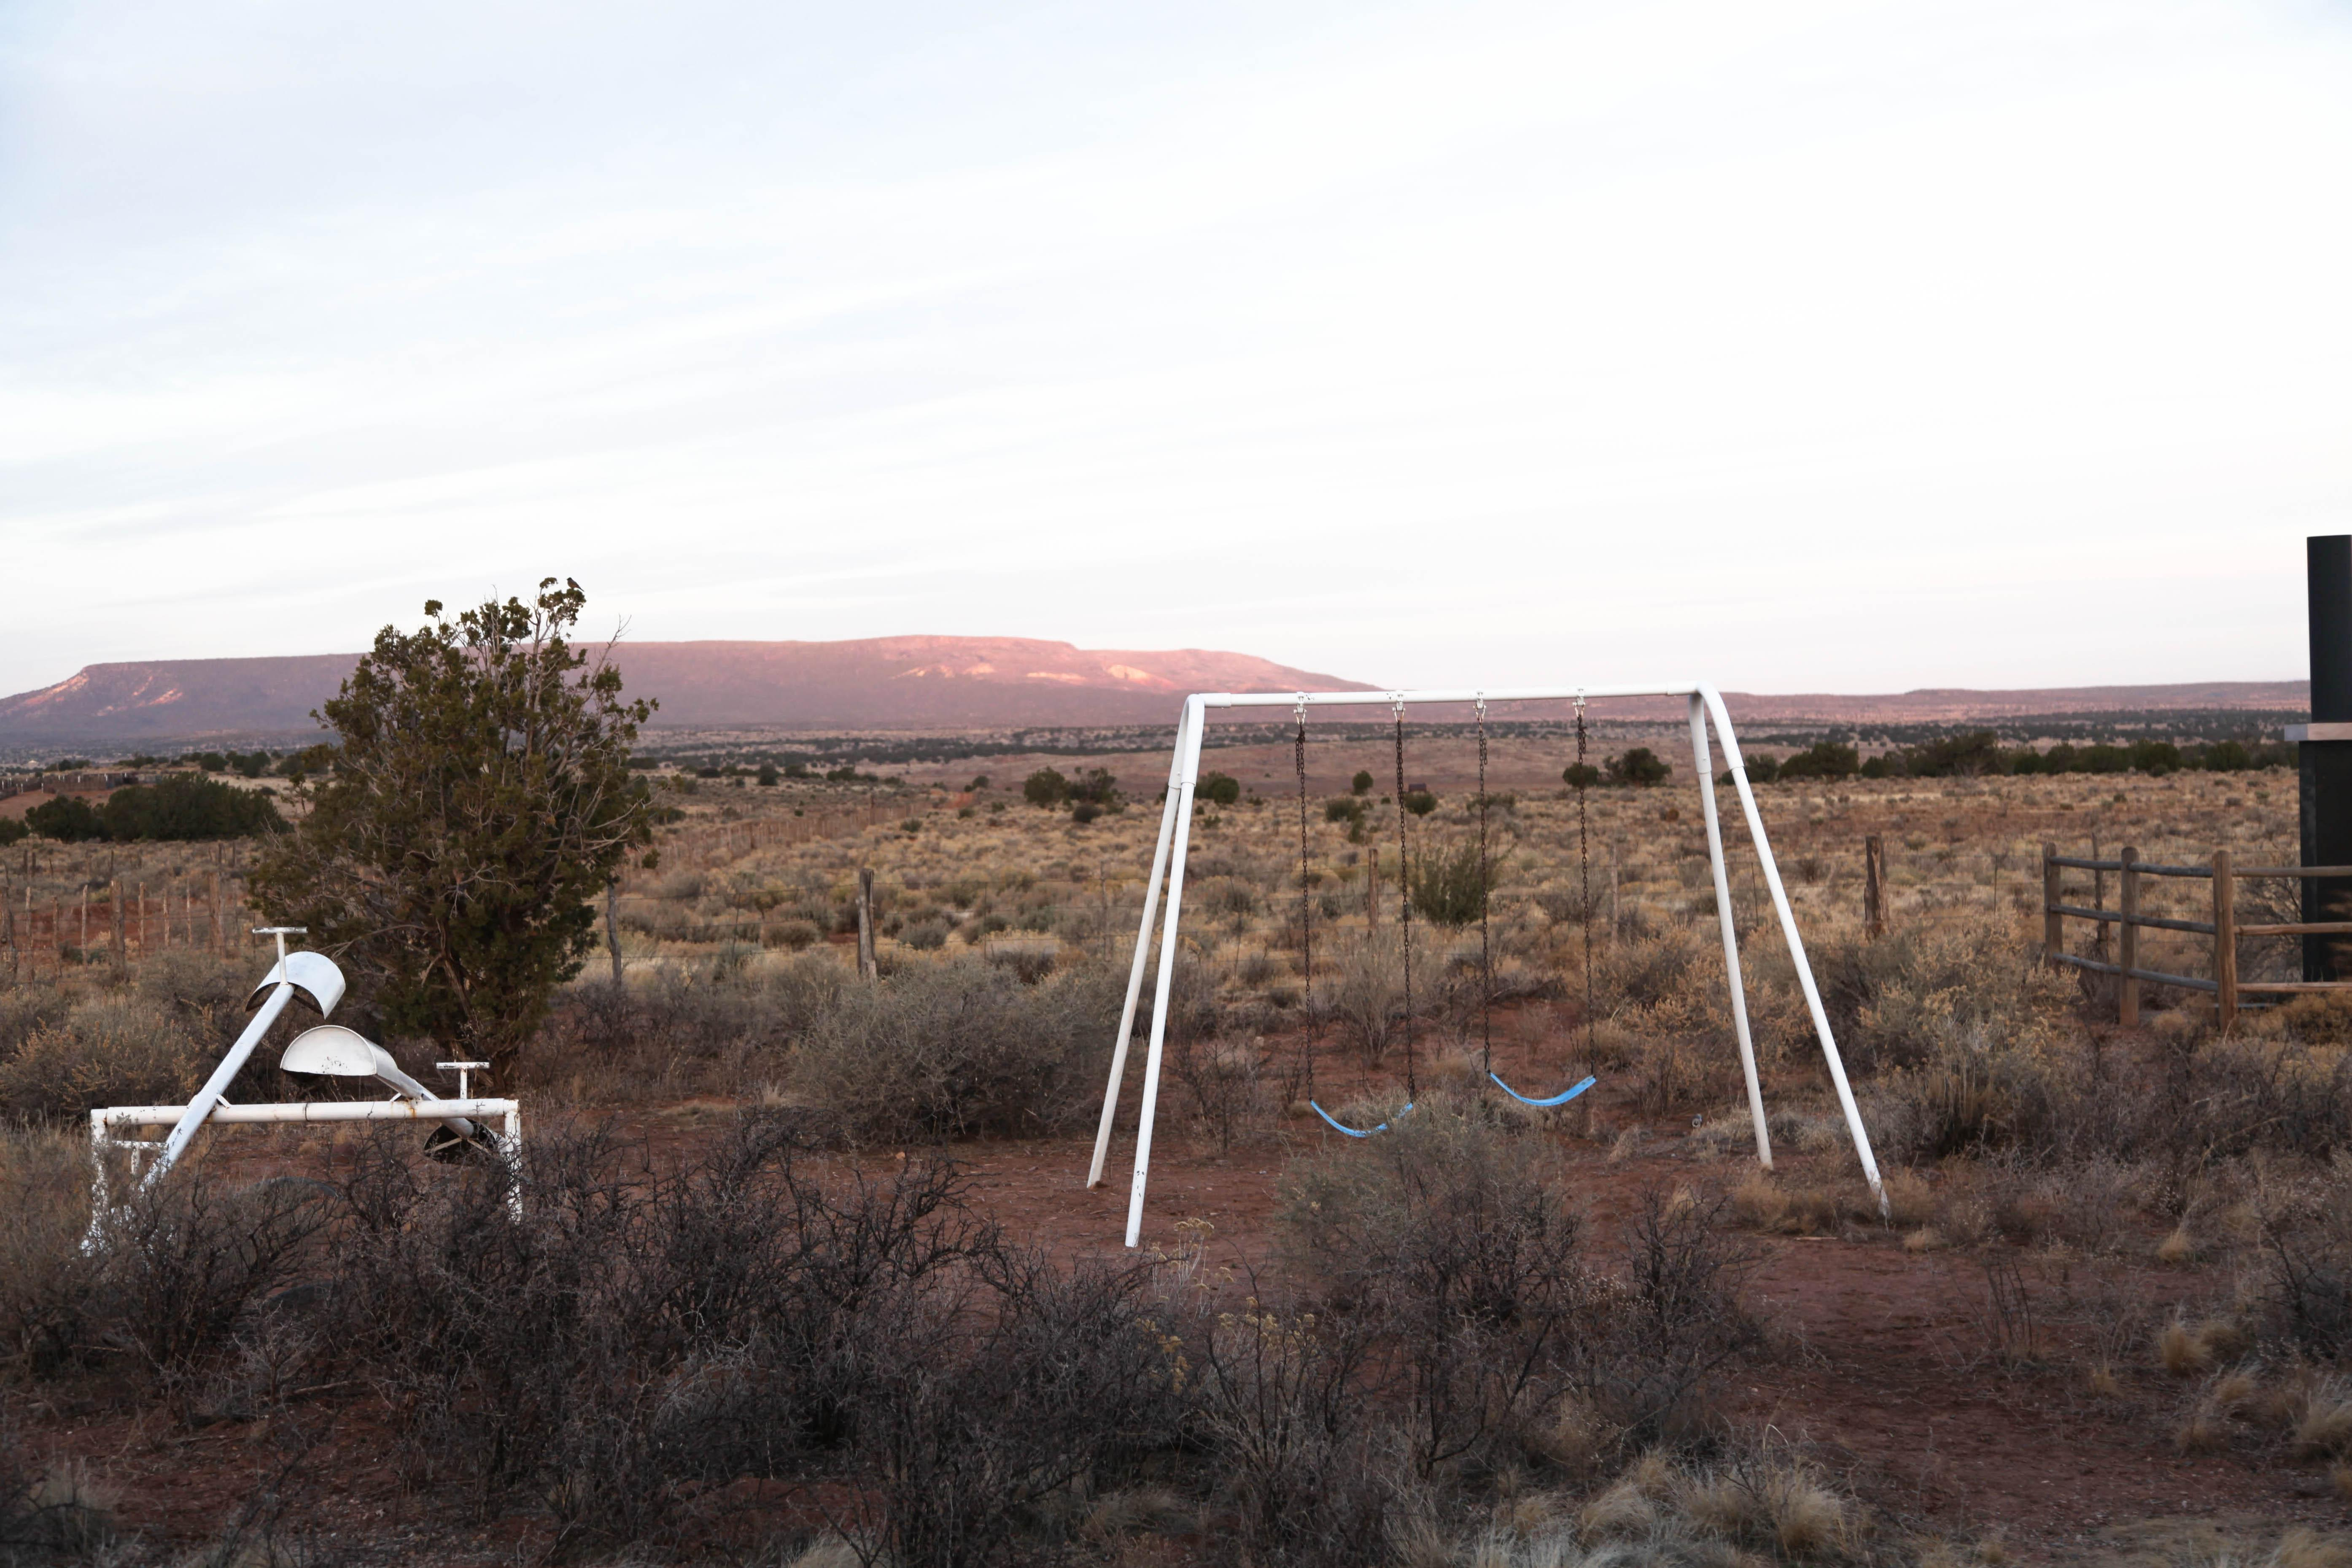 A small playground sits outside the Mount Trumbull schoolhouse. This part of the Arizona Strip is where Cliven Bundy's great grandfather, Abraham Bundy, first settled Bundyville.